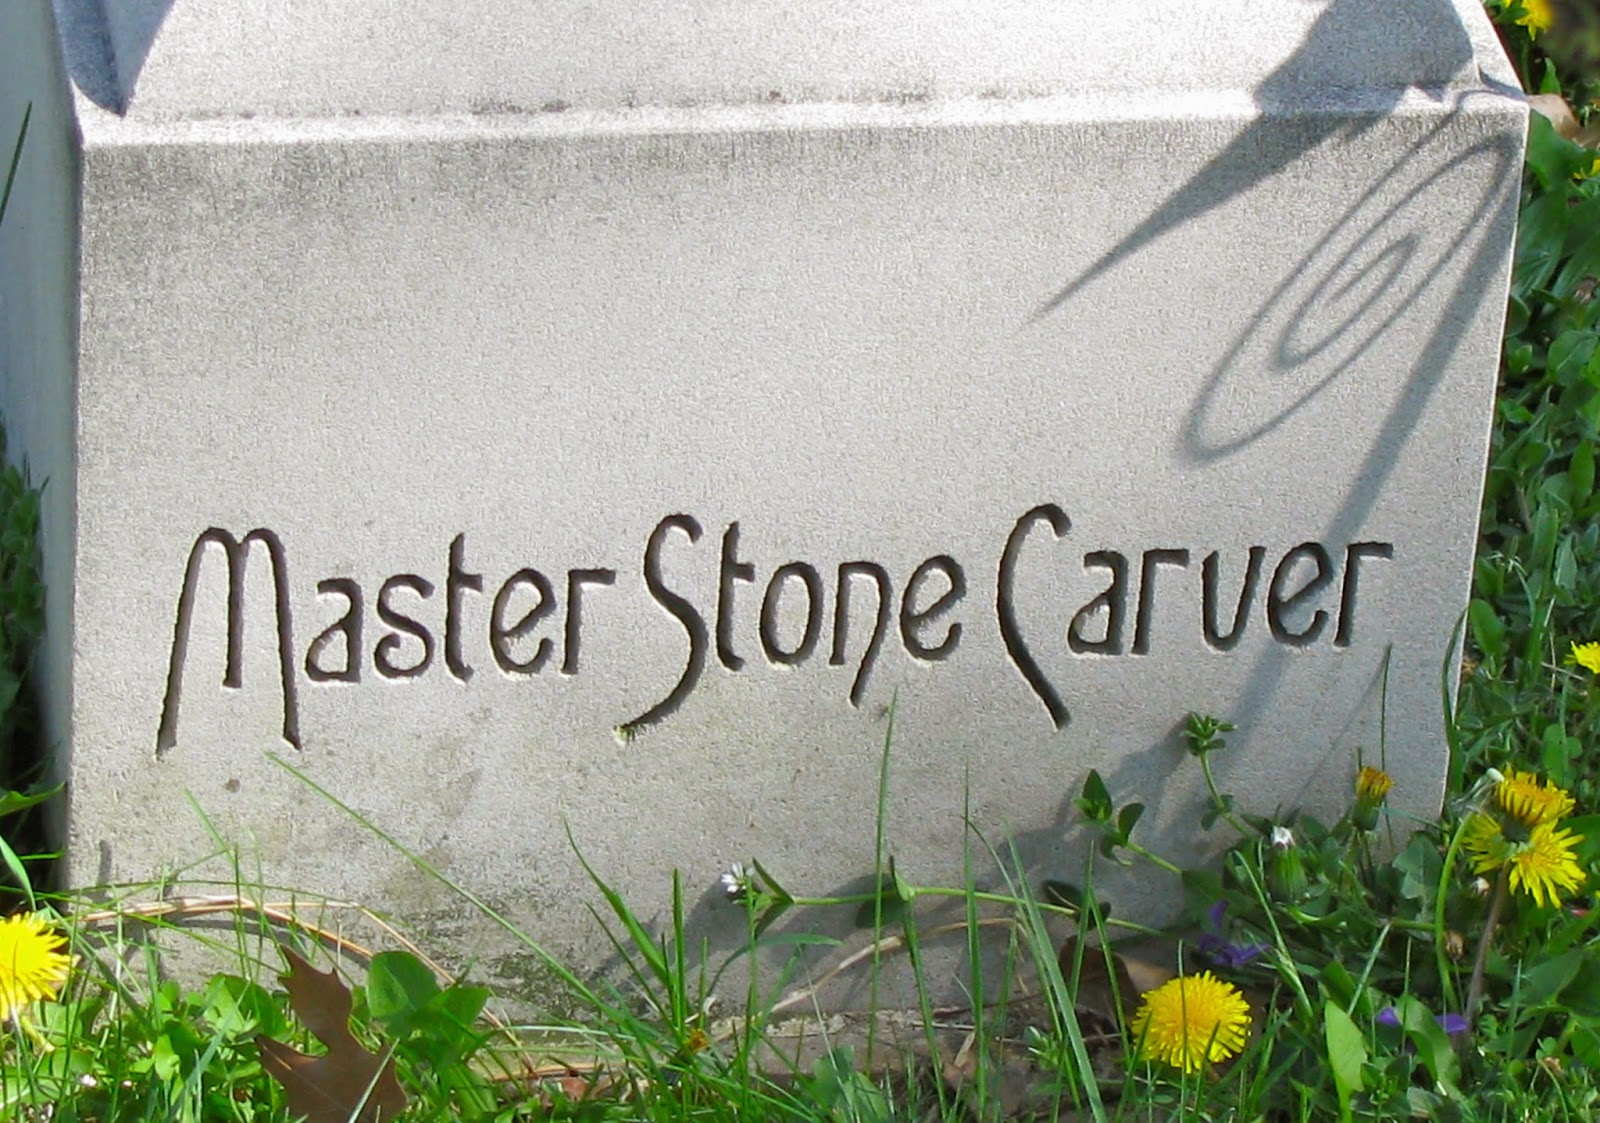 A grave interest dying art stone carvers of the cemetery